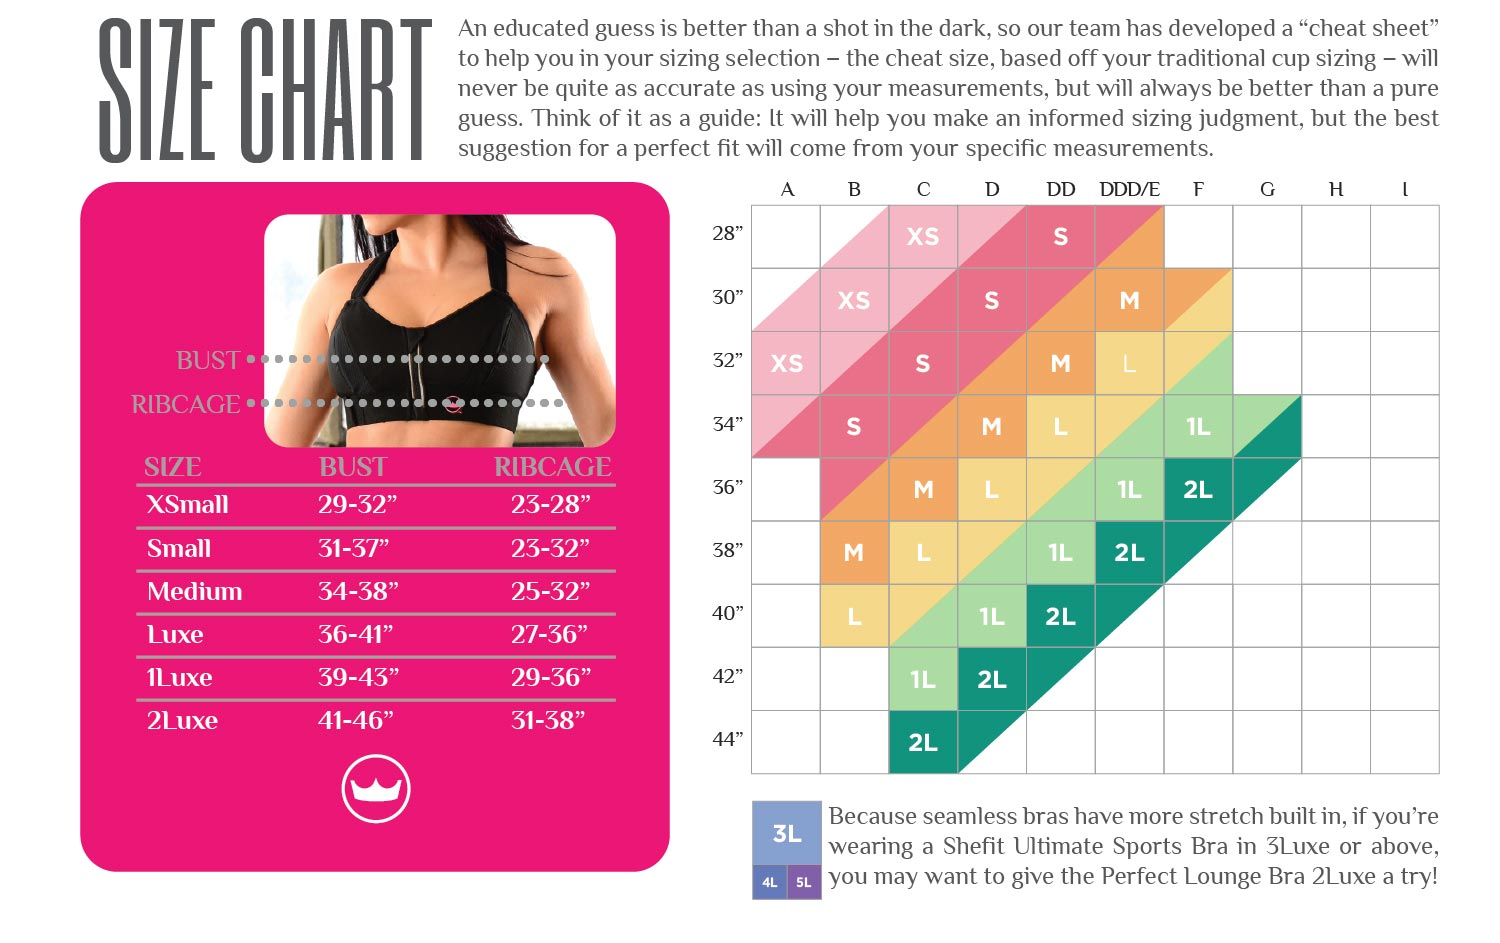 Shefit find your perfect fit with proper measurements